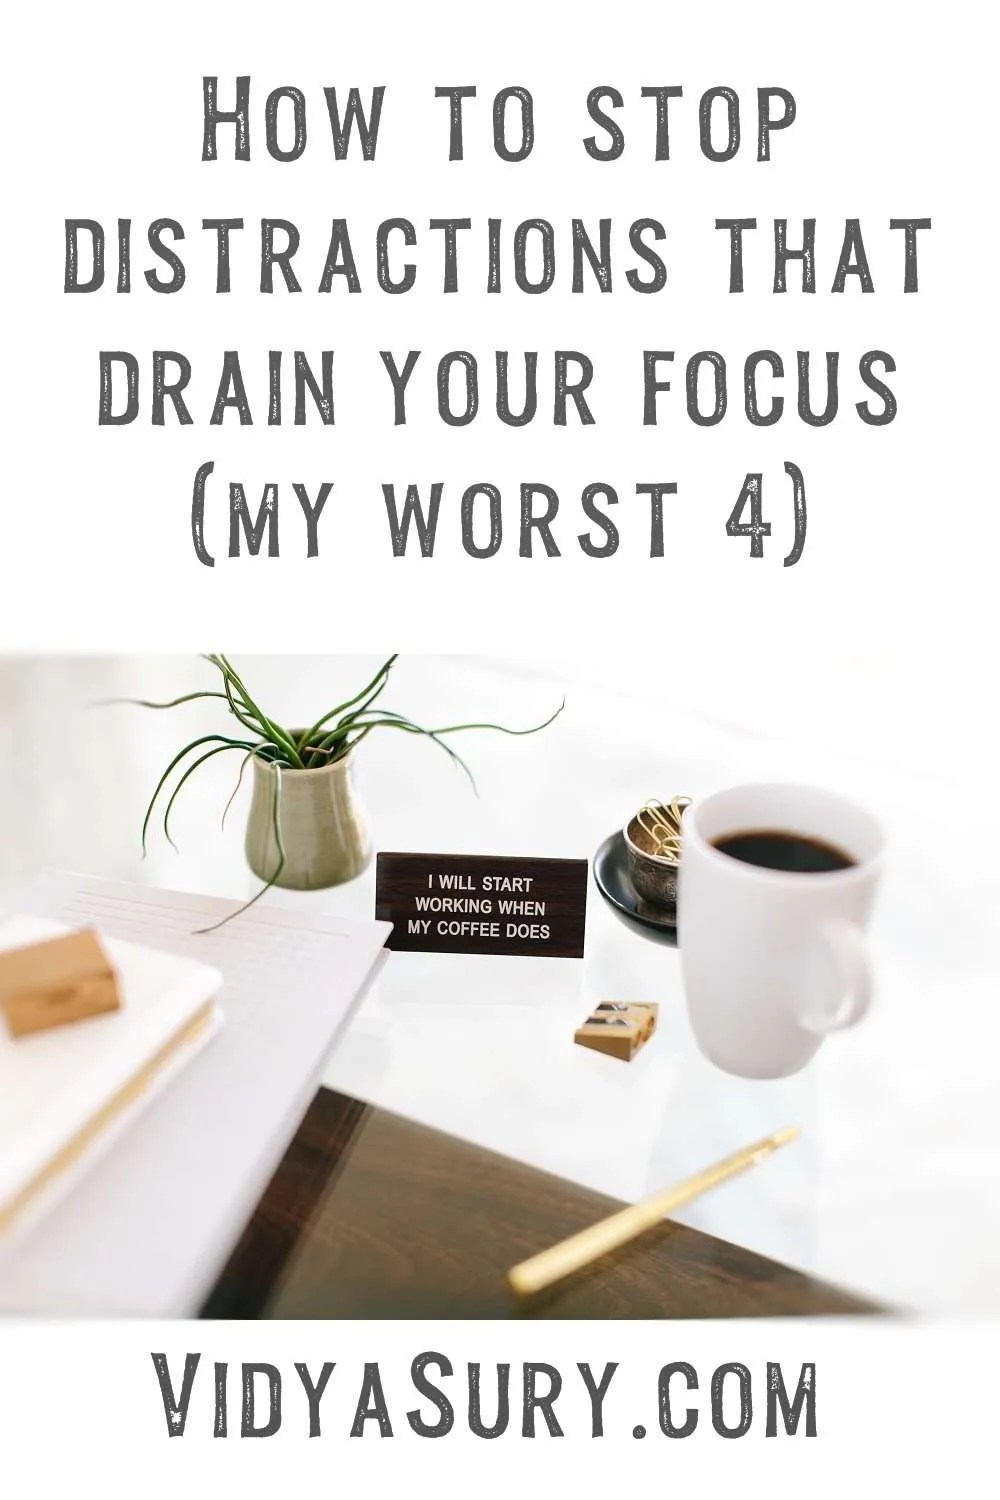 Distractions that drain your focus and my worst 4